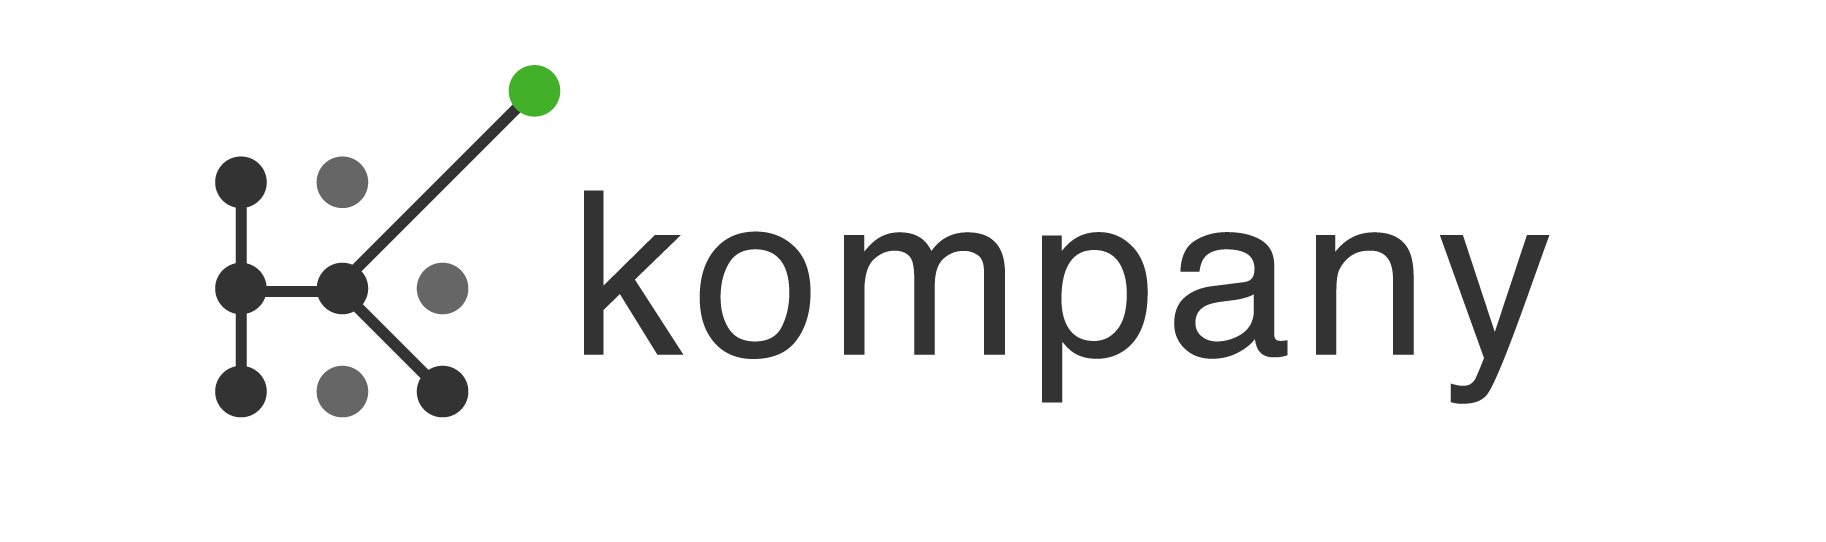 Kompany_all-rgb_grey